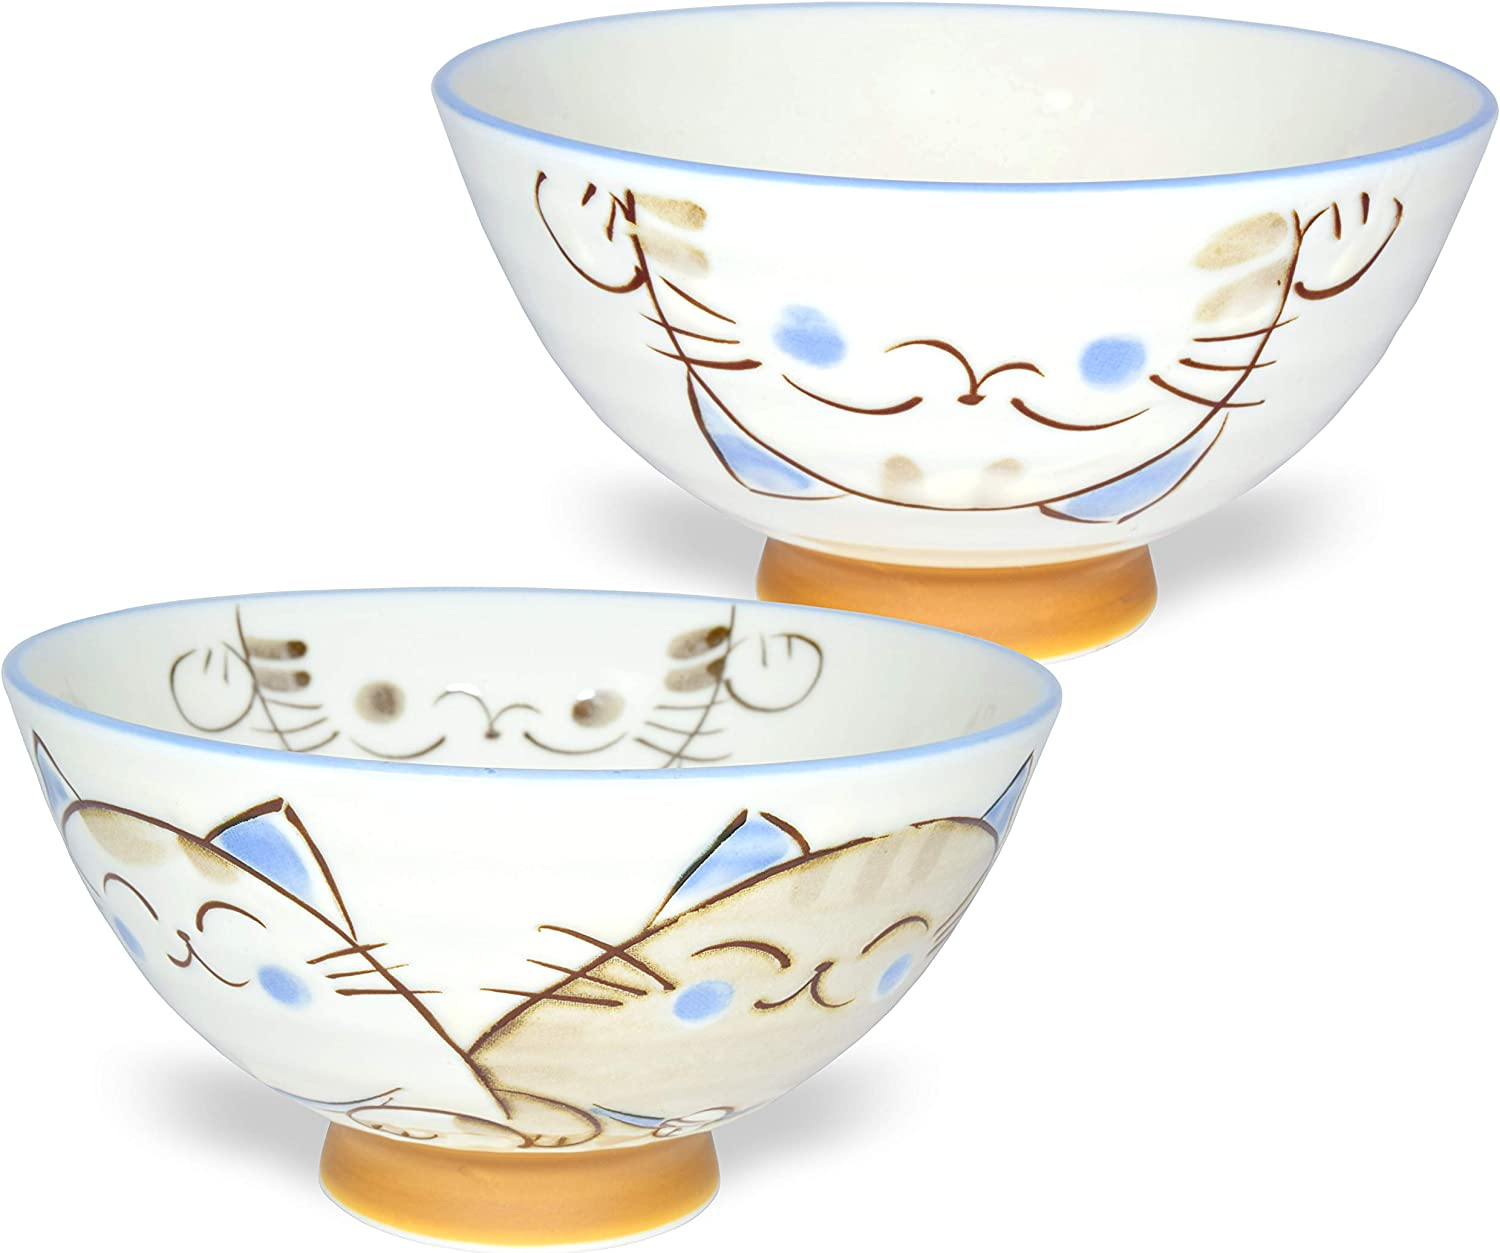 Japanese Handcrafted Rice Bowl, Authentic Mino Ware Pottery, Calico Cat Motif Design, MIKE Blue Chawan, set of 2